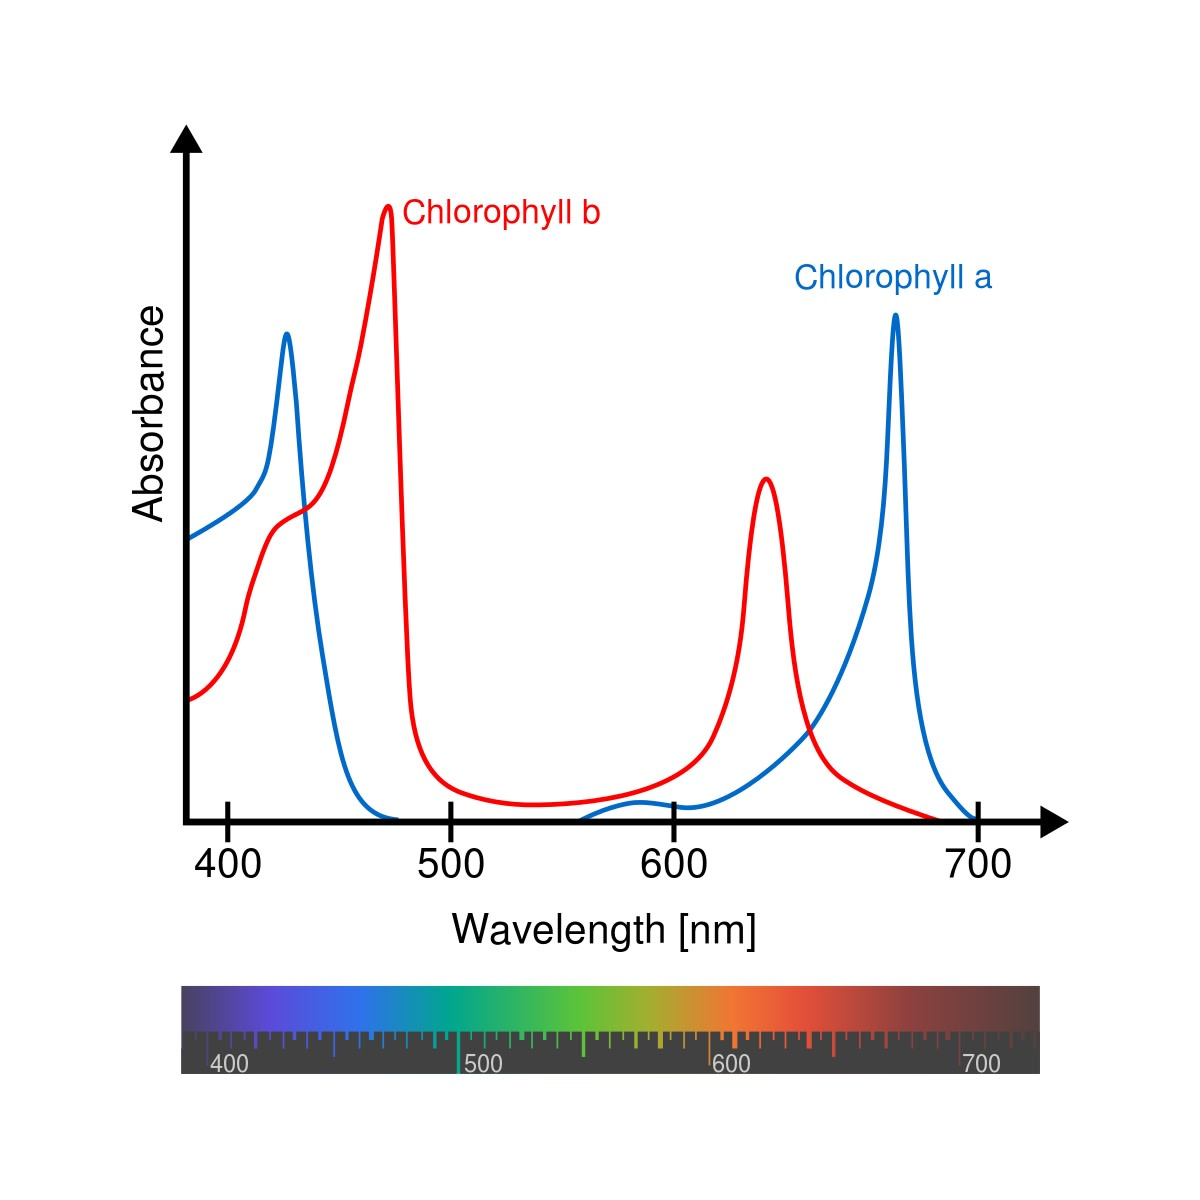 The light absorption spectra of chlorophyll a and b are slightly different. Wavelength is measured in nm, or nanometers. A nanometer is a billionth of a meter.